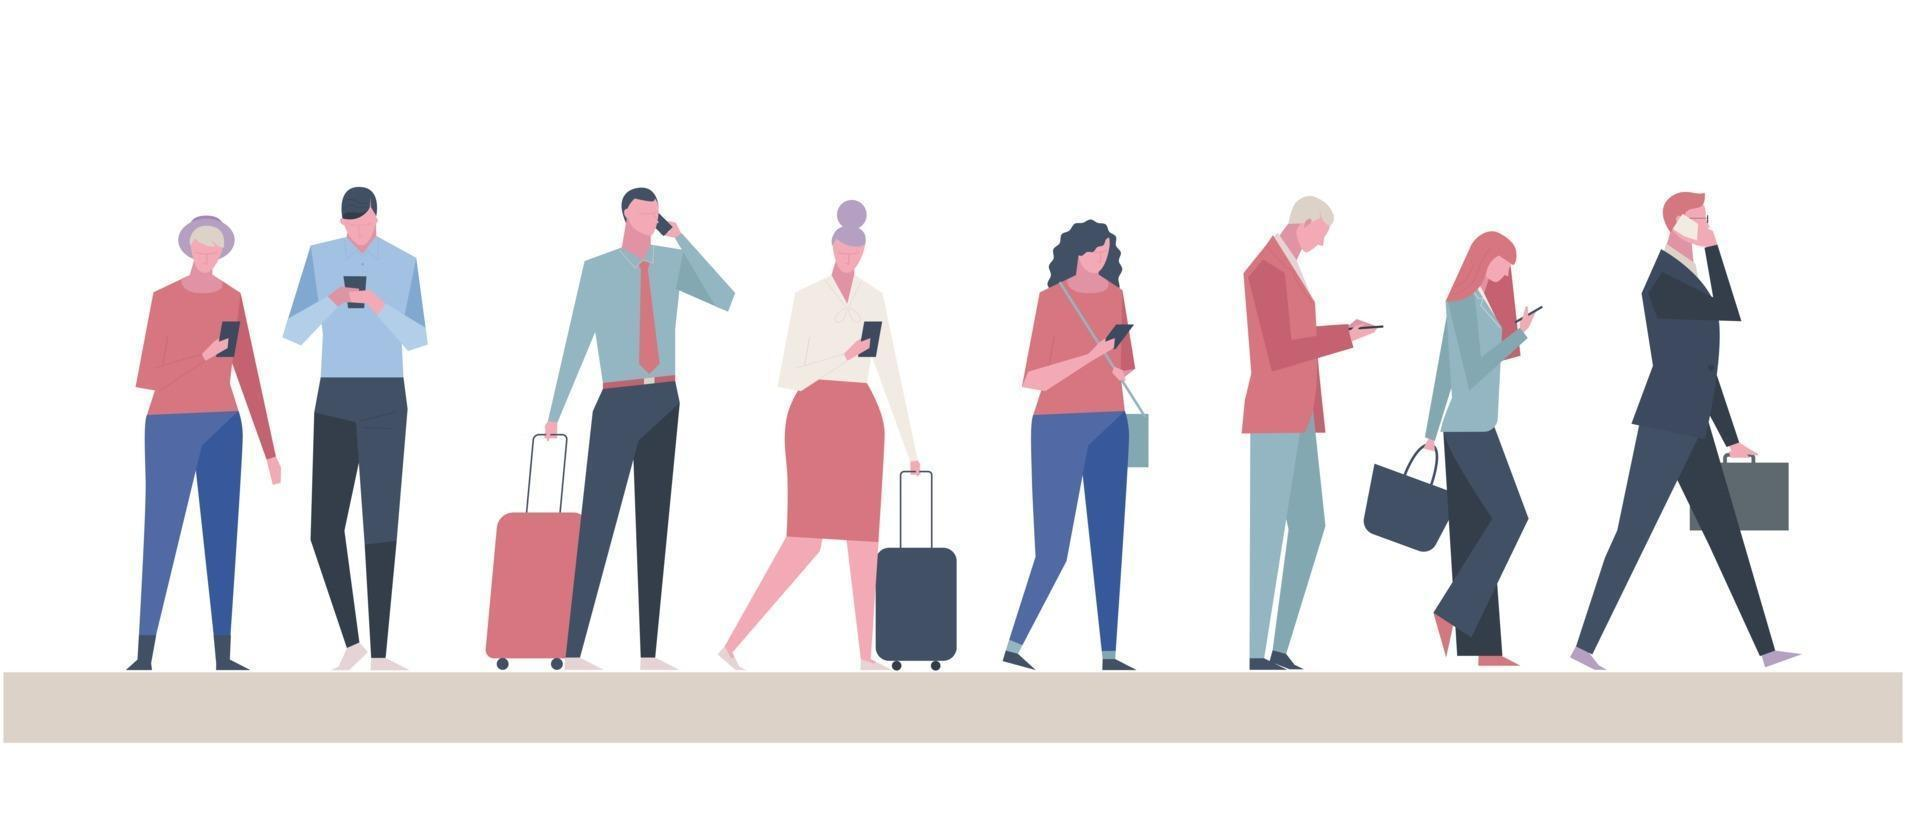 Many people using cell phones. vector design illustrations.